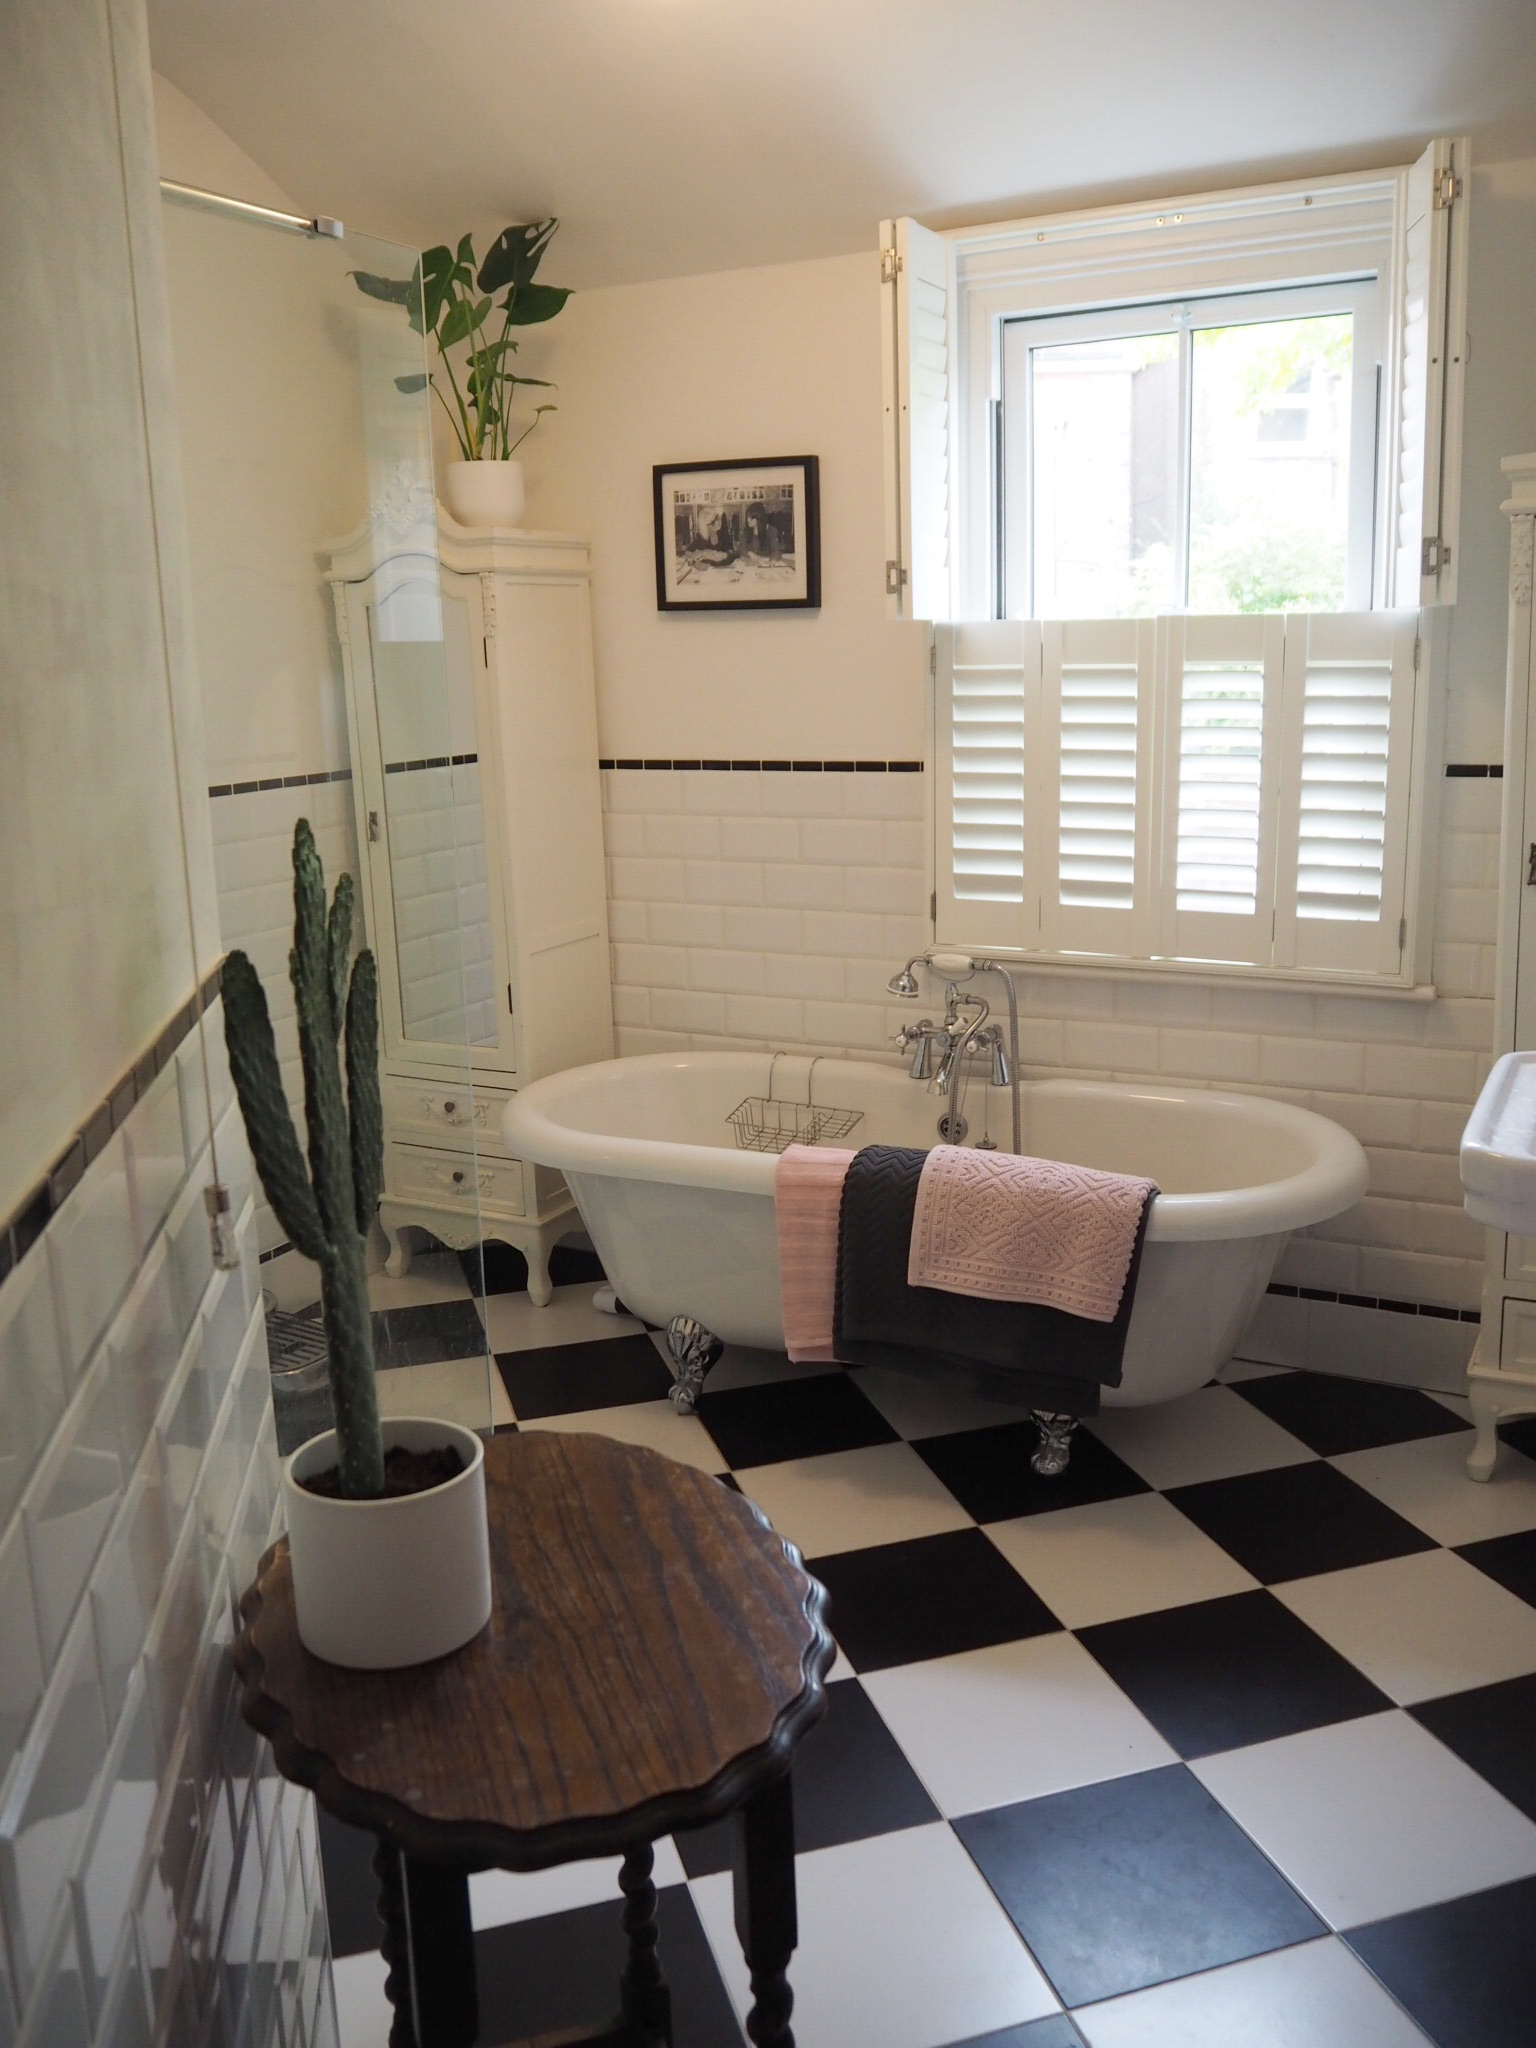 BLACK AND WHITE BATHROOM WITH BLUSH PINK AND GREY H&M TOWELS